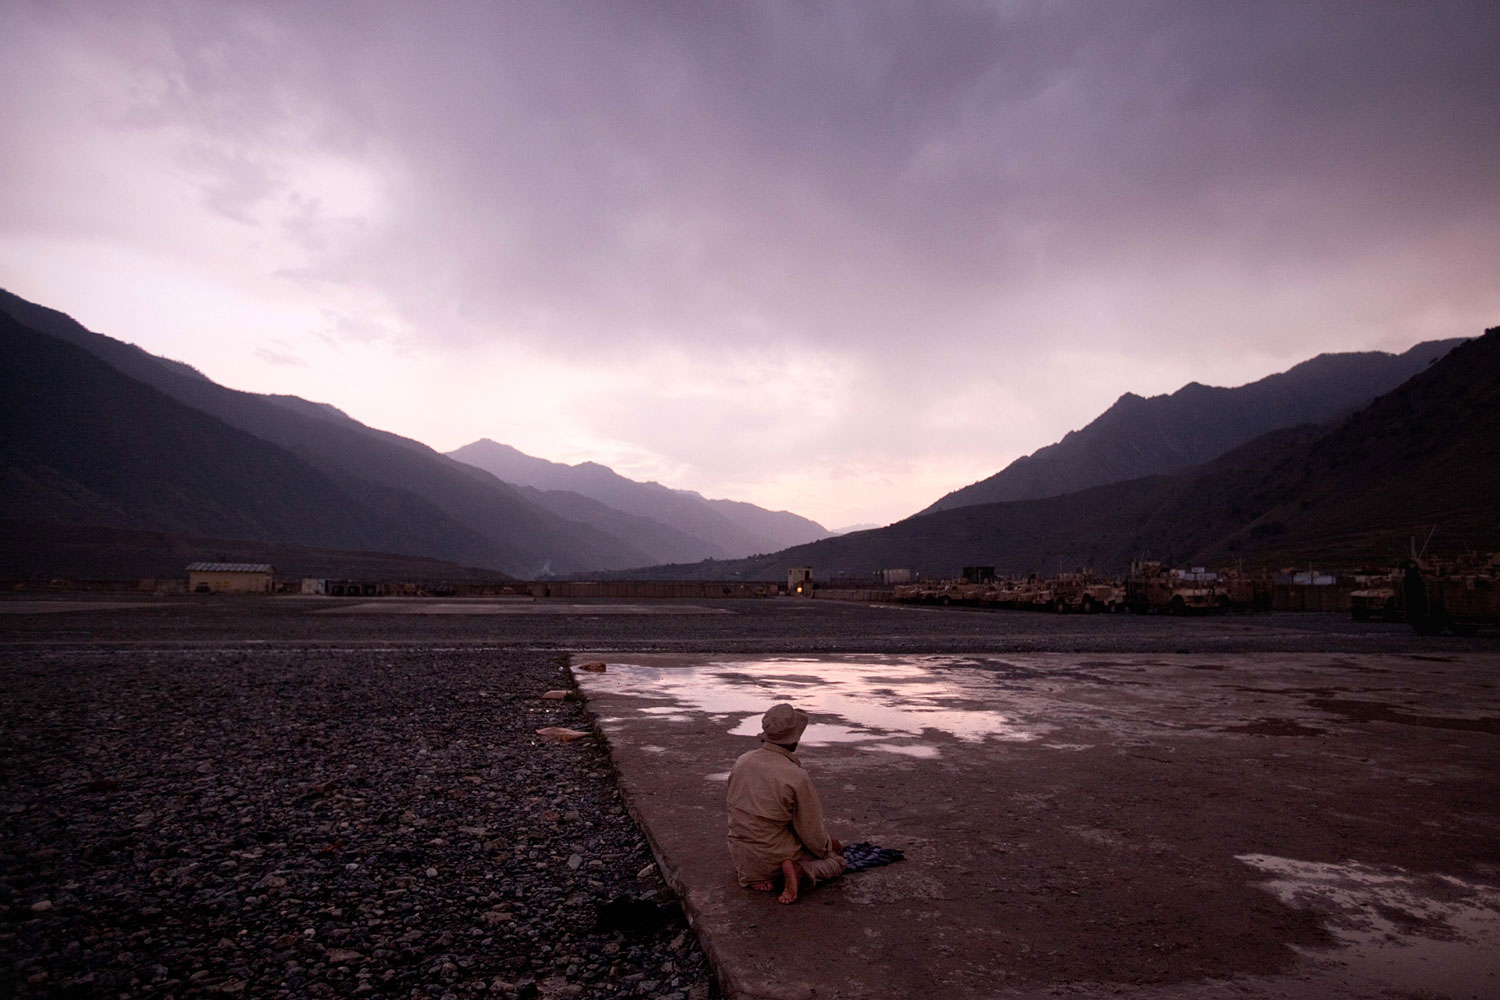 July 3, 2011. An Afghan man prays at sunset on a helipad following a rainstorm at Forward Operating Base Bostick in Kunar province, Afghanistan.